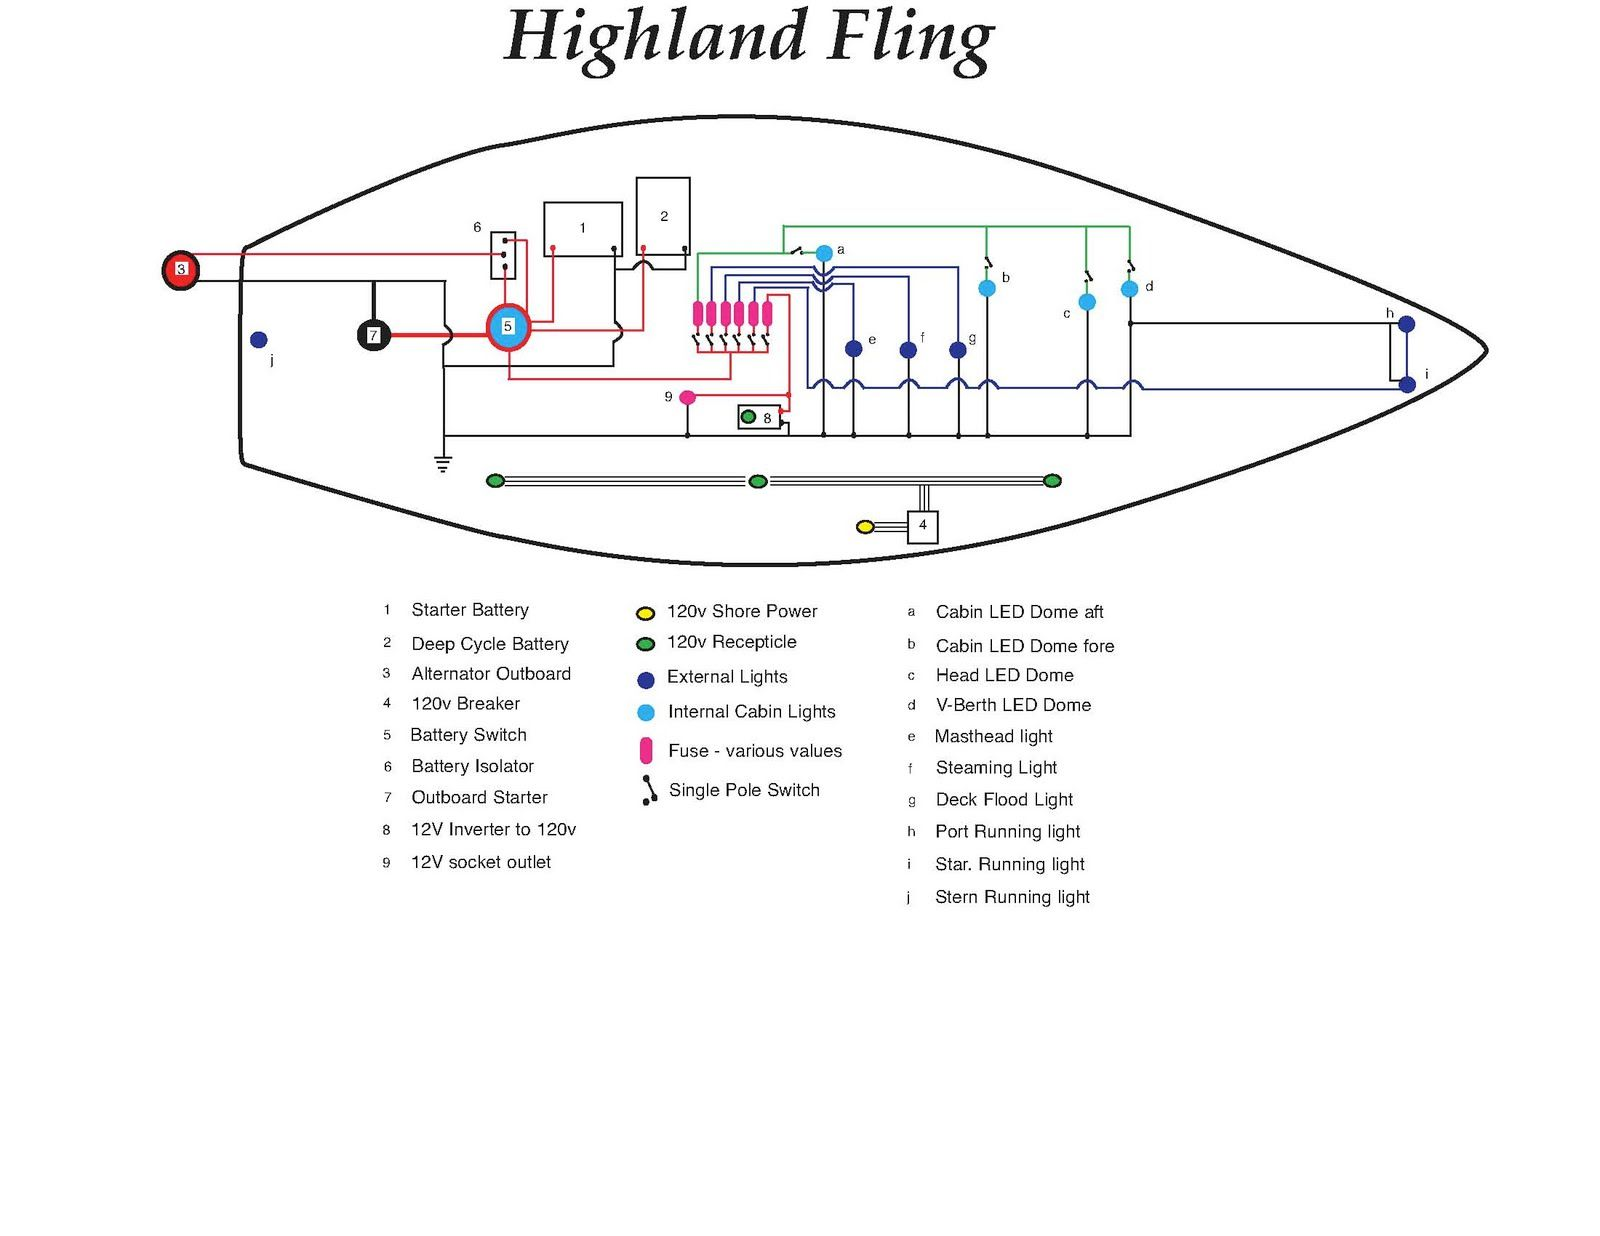 highland fling my grampian 26 sailboat wiring diagram sailboats rh pinterest com sailboat wiring diaghram sailboat dc wiring diagram